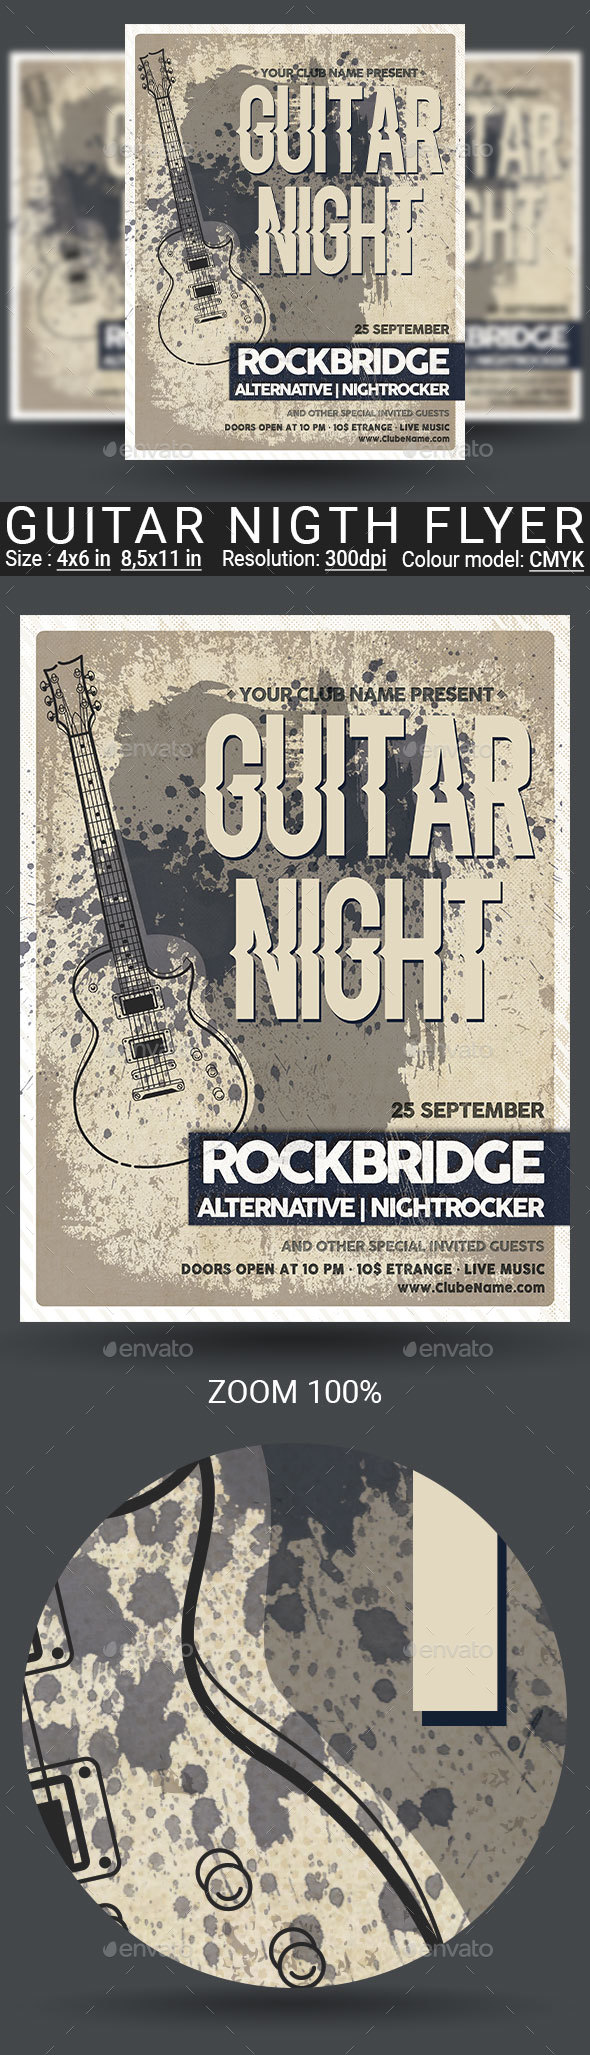 Guitar Nigth Flyer Poster - Events Flyers